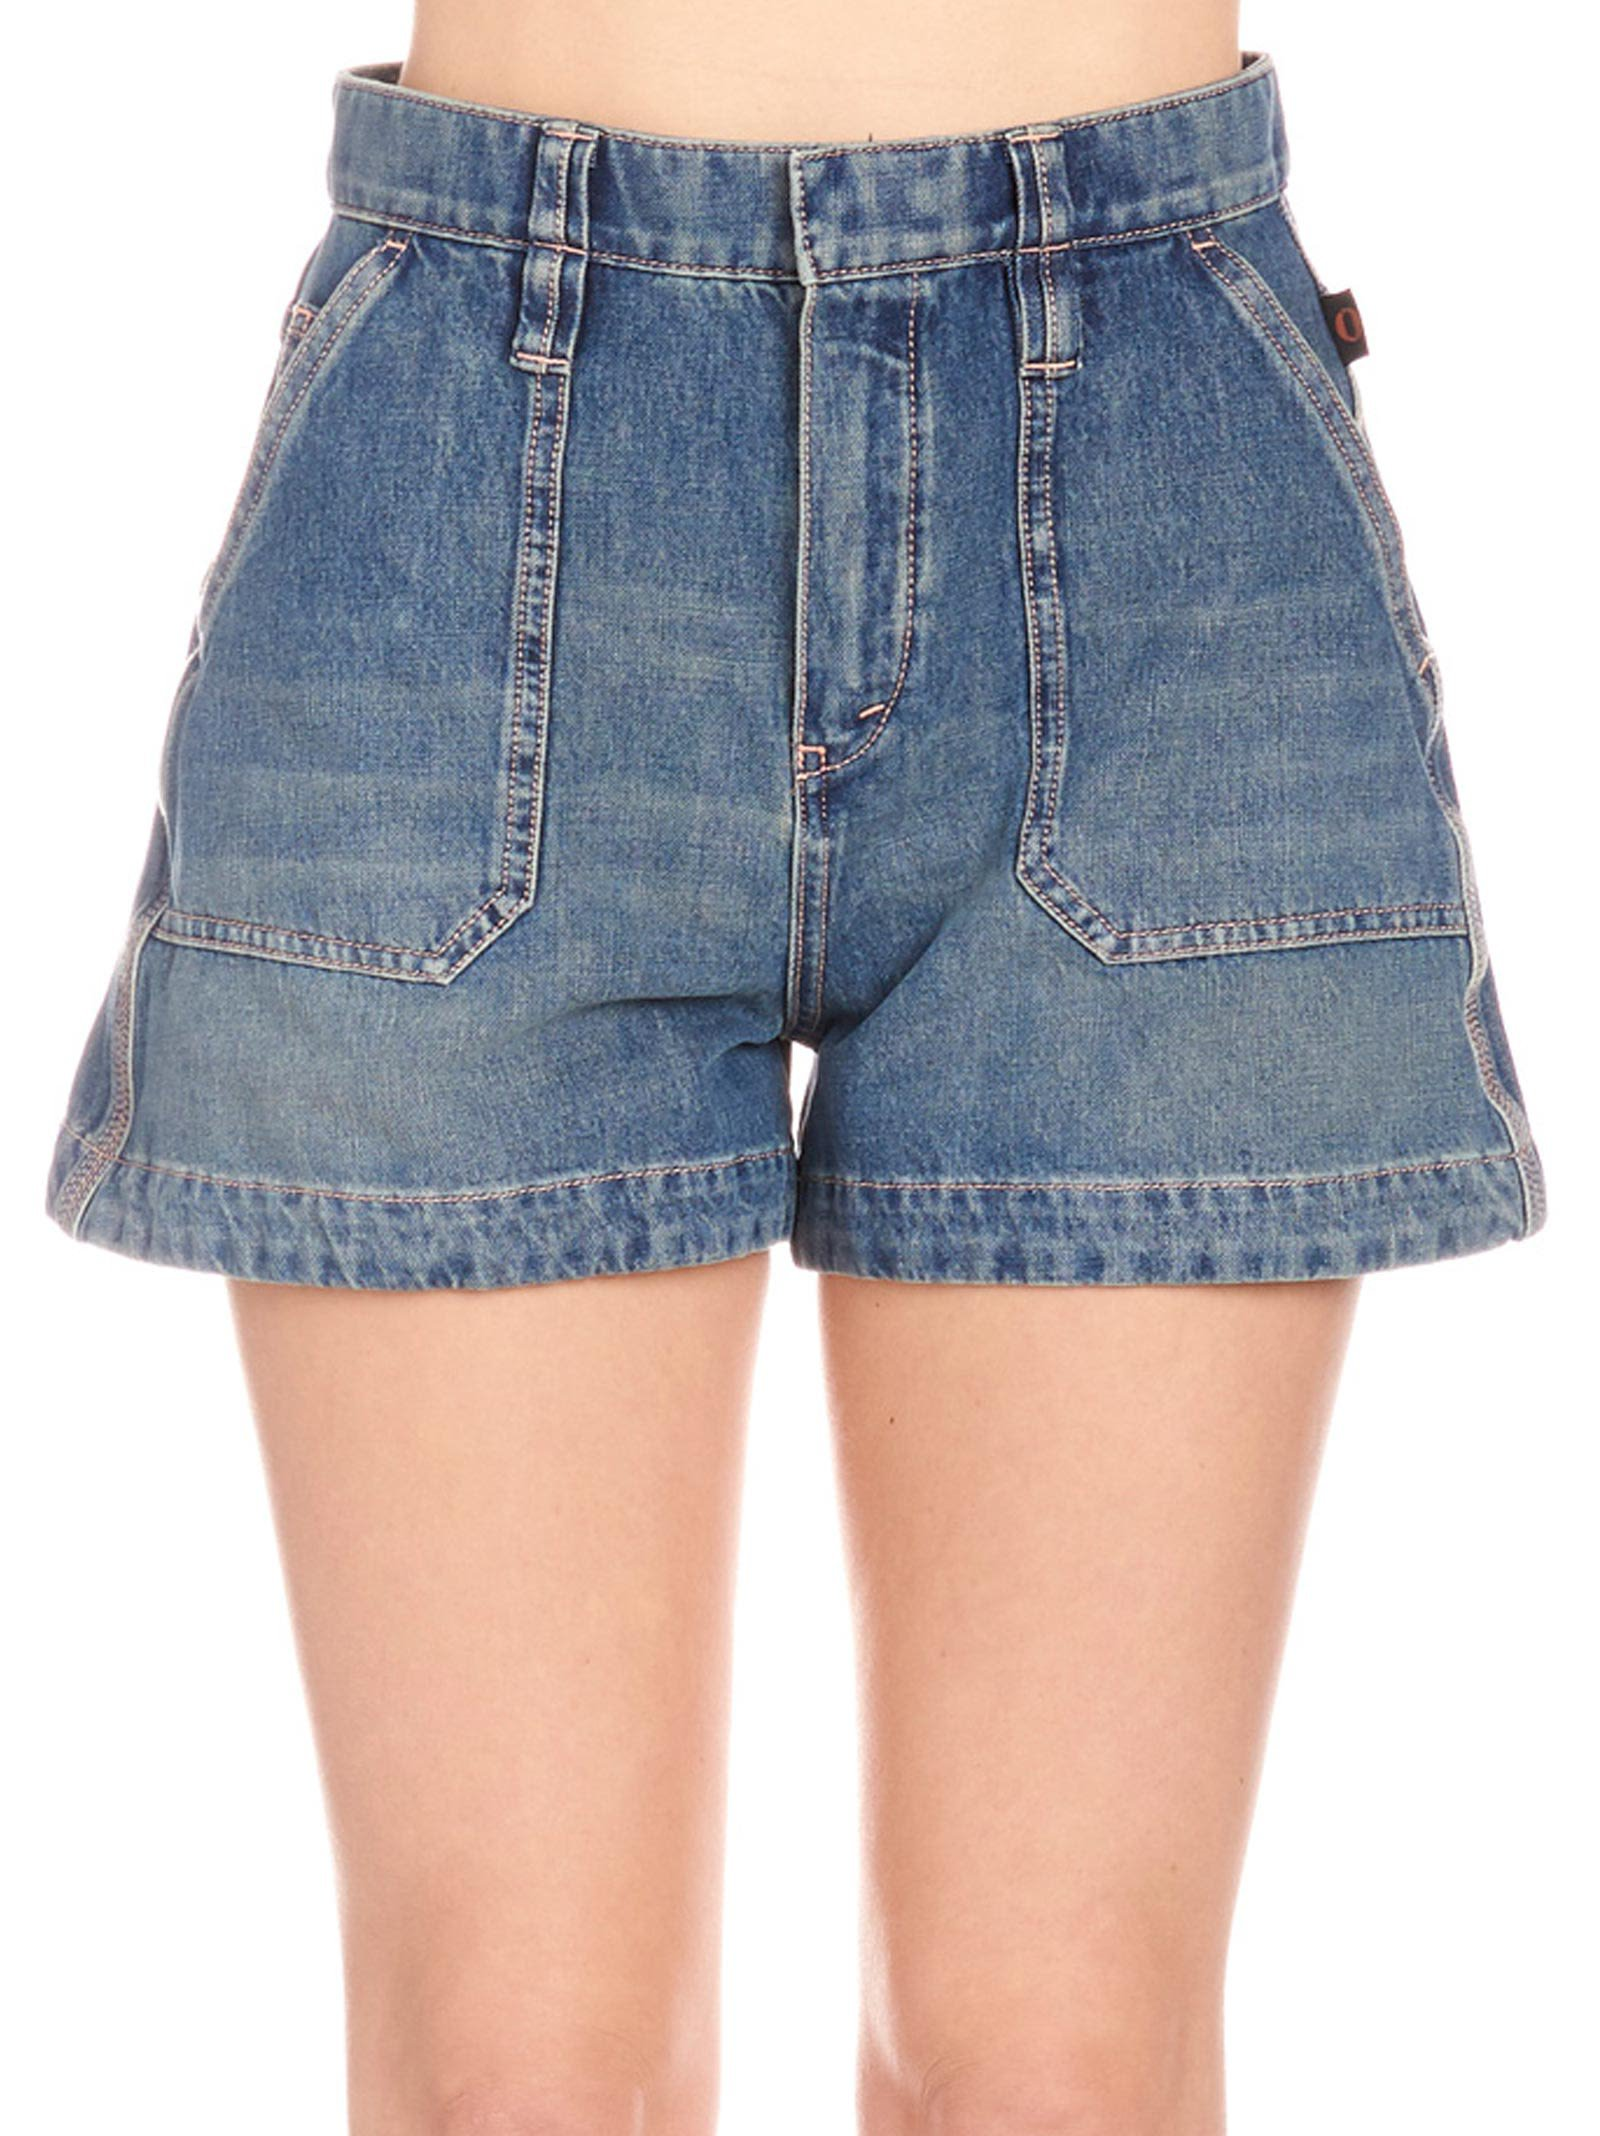 Chloé Shorts